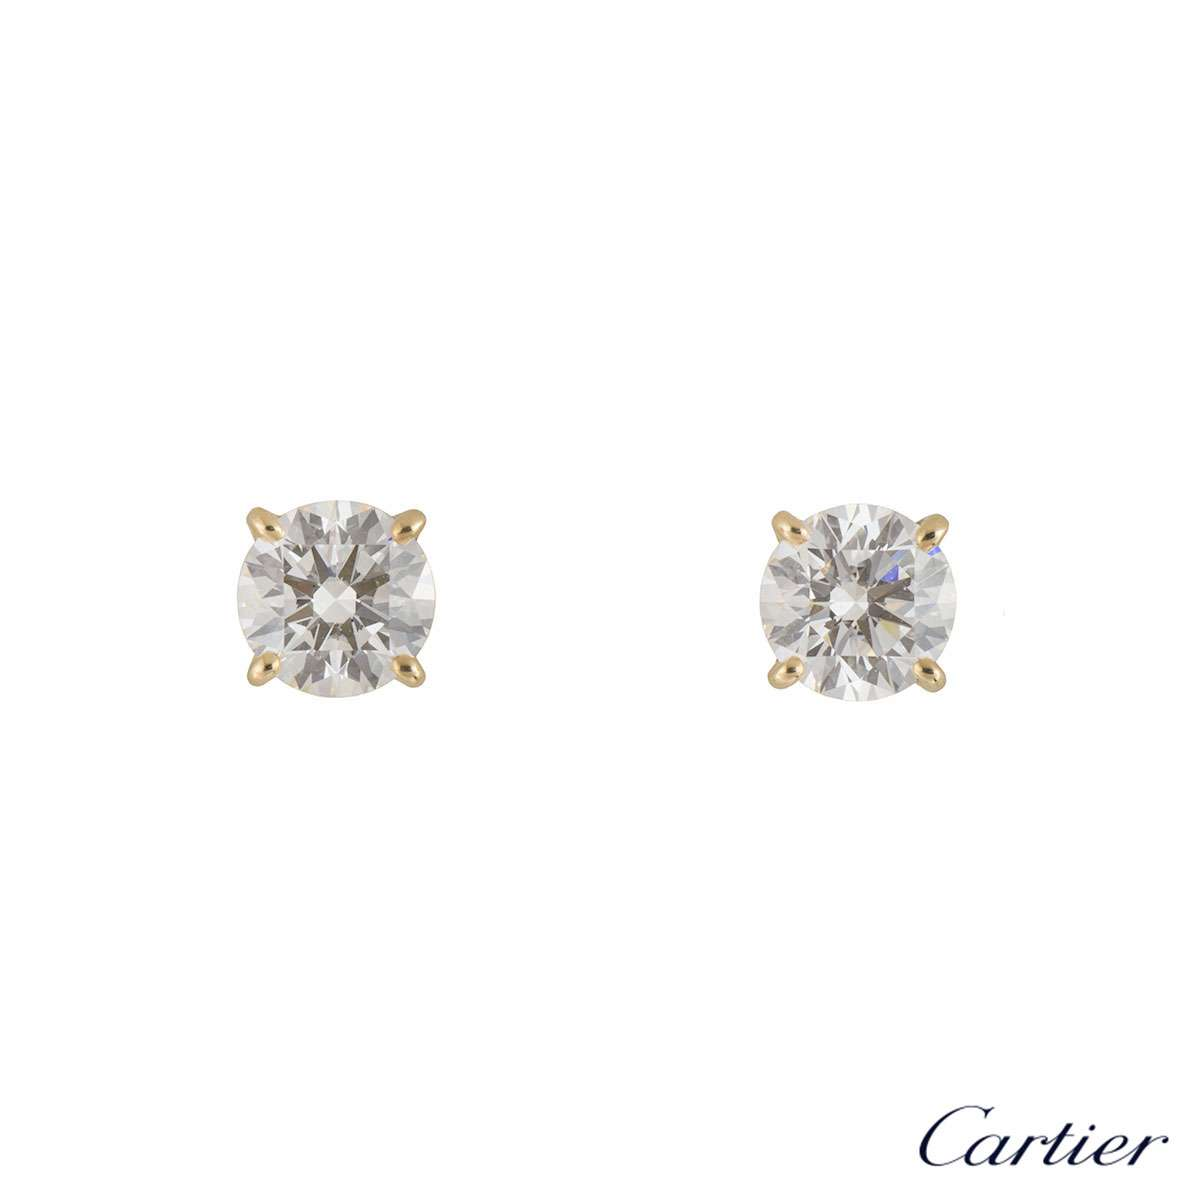 d43dc33d7 Cartier Yellow Gold 1895 Diamond Earrings XXX 1.06ct N8023400